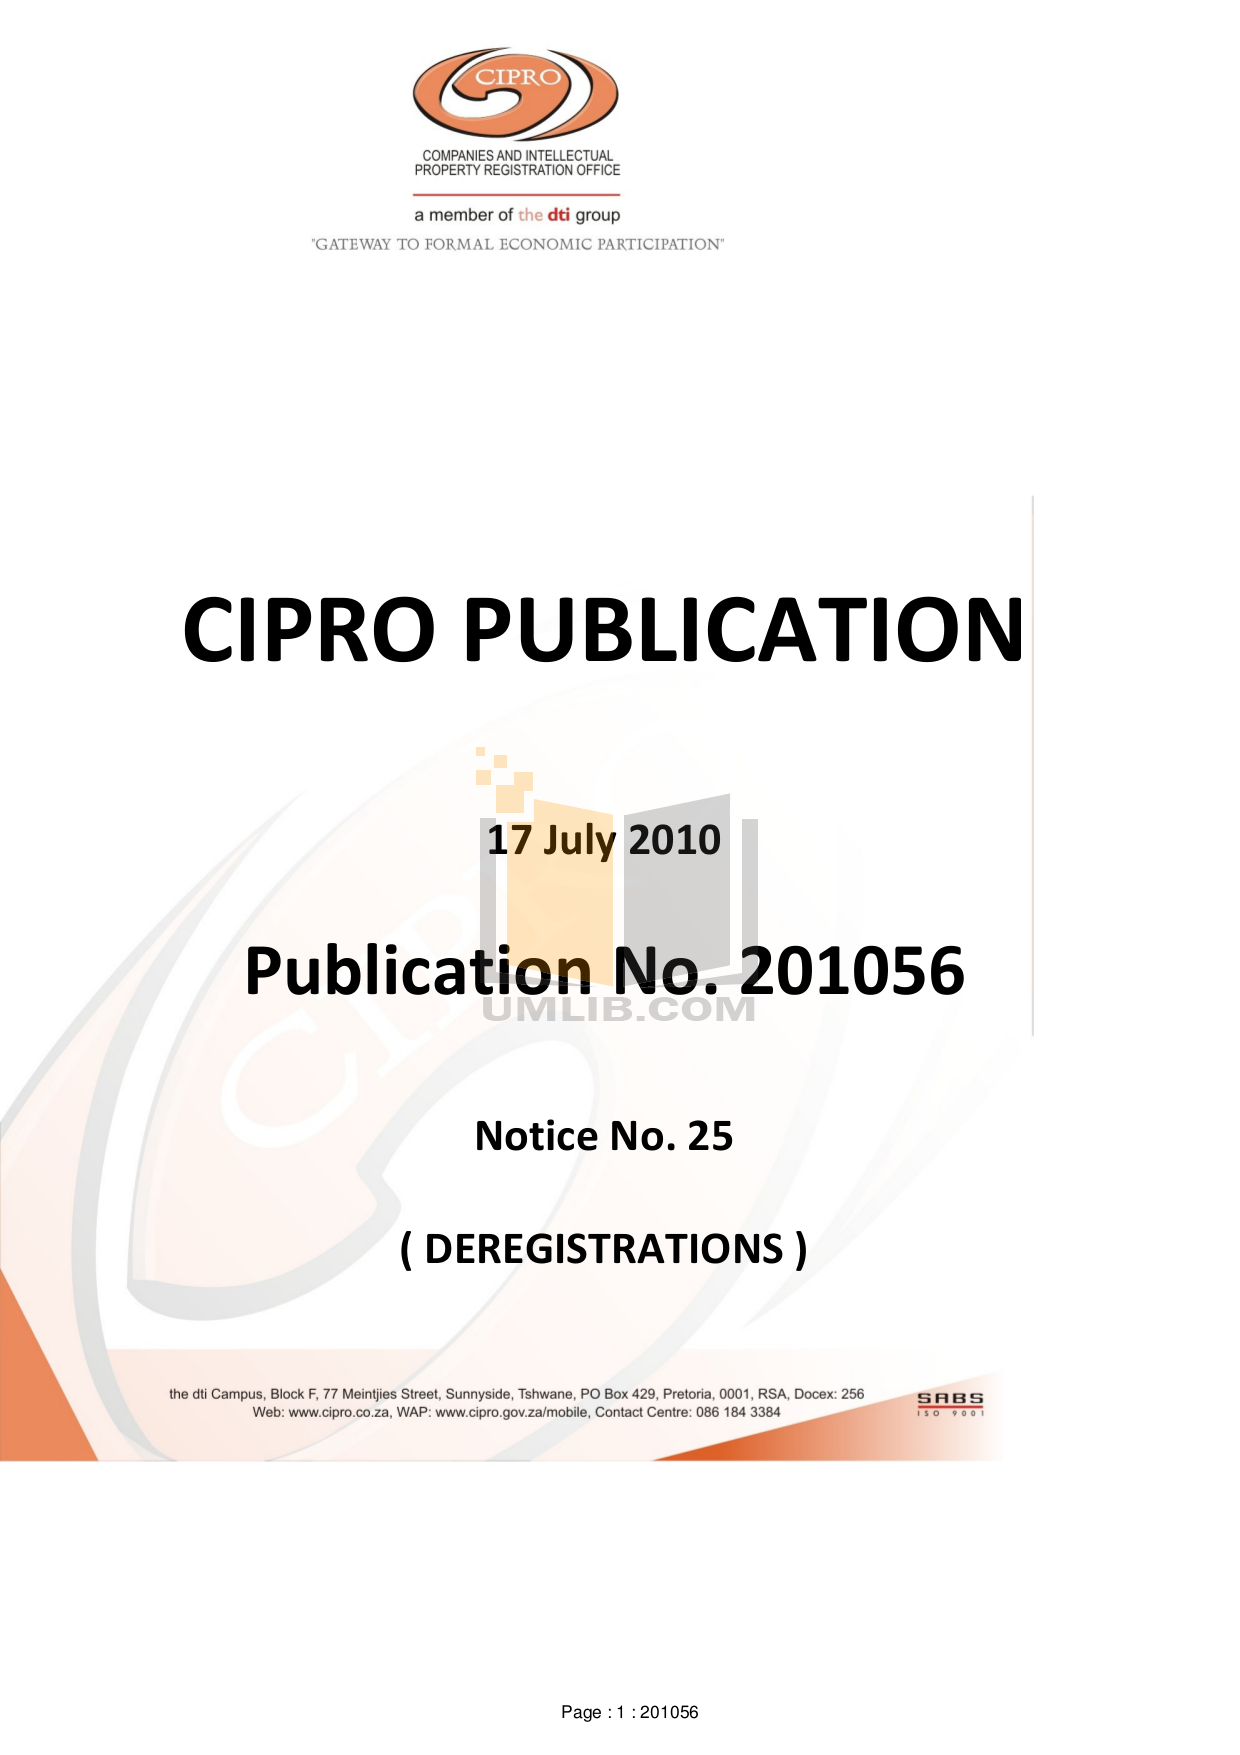 Cipro company deregistration forms